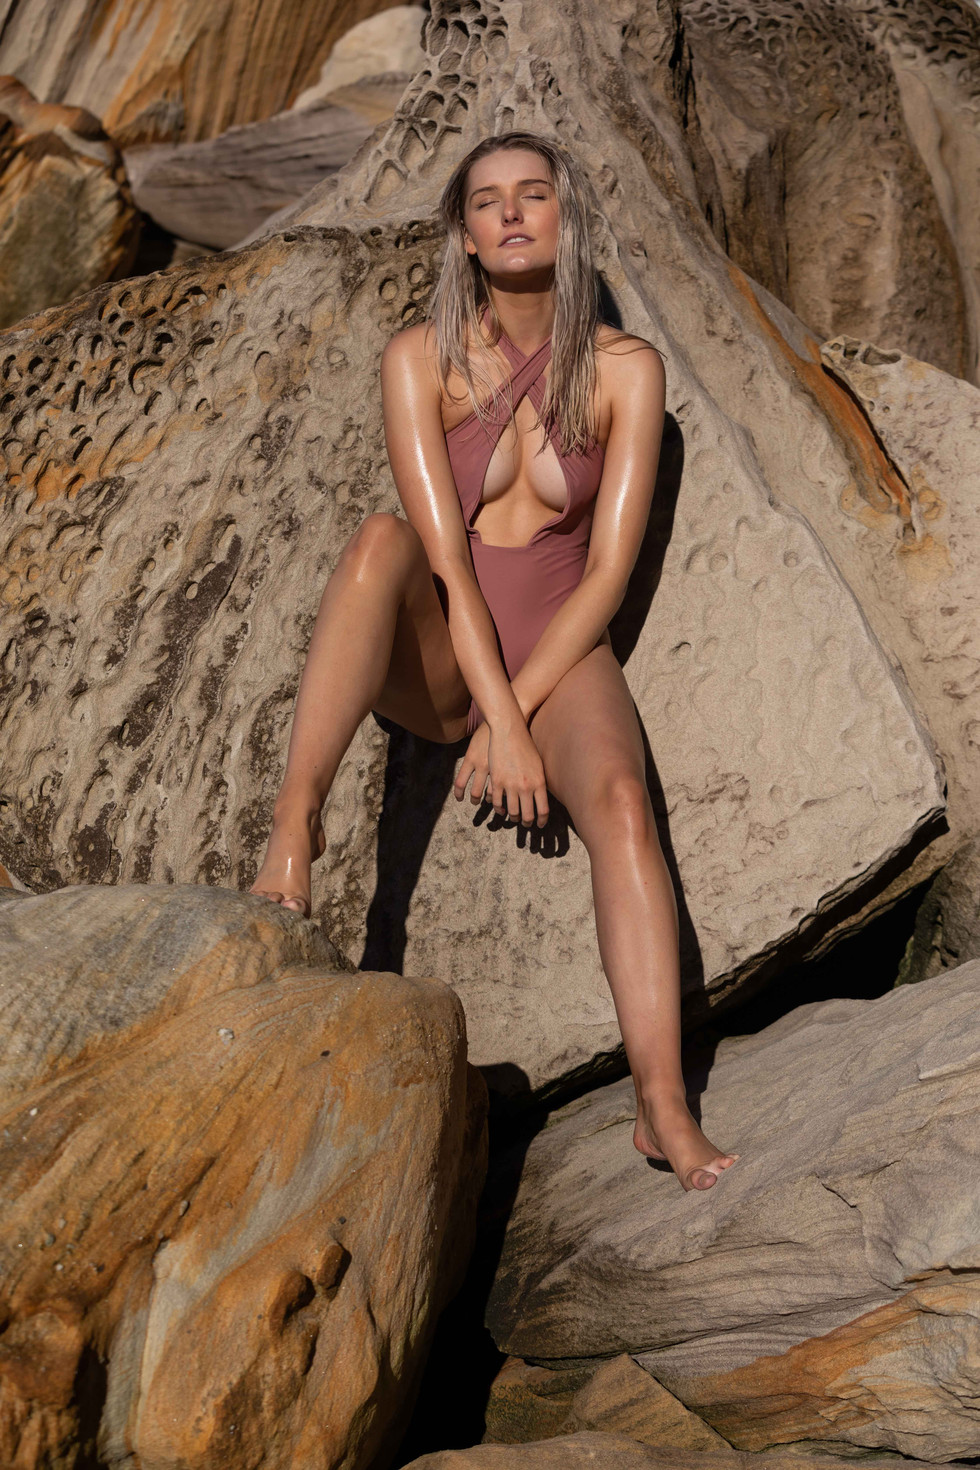 Caitlin_by_CoogeePhotography-3196.jpg